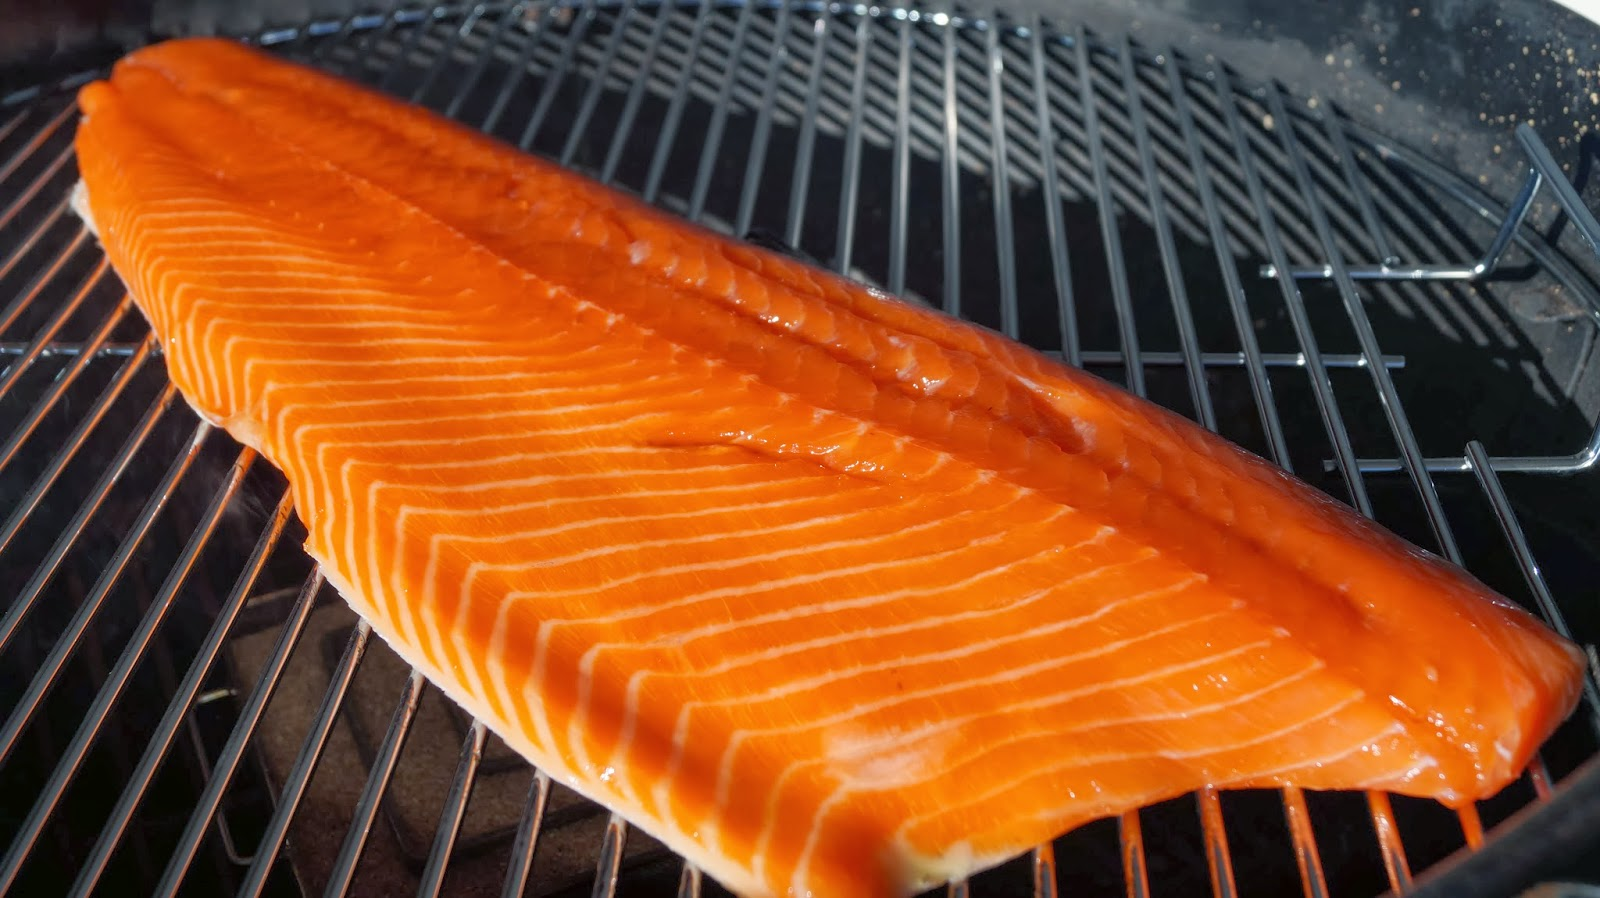 Recipe On How To Cold Smoke Salmon Ingredients:  1 Kg Fresh Salmon Filet   100 Gram Salt  100 Gram Sugar  20 Ml Maple Syrup